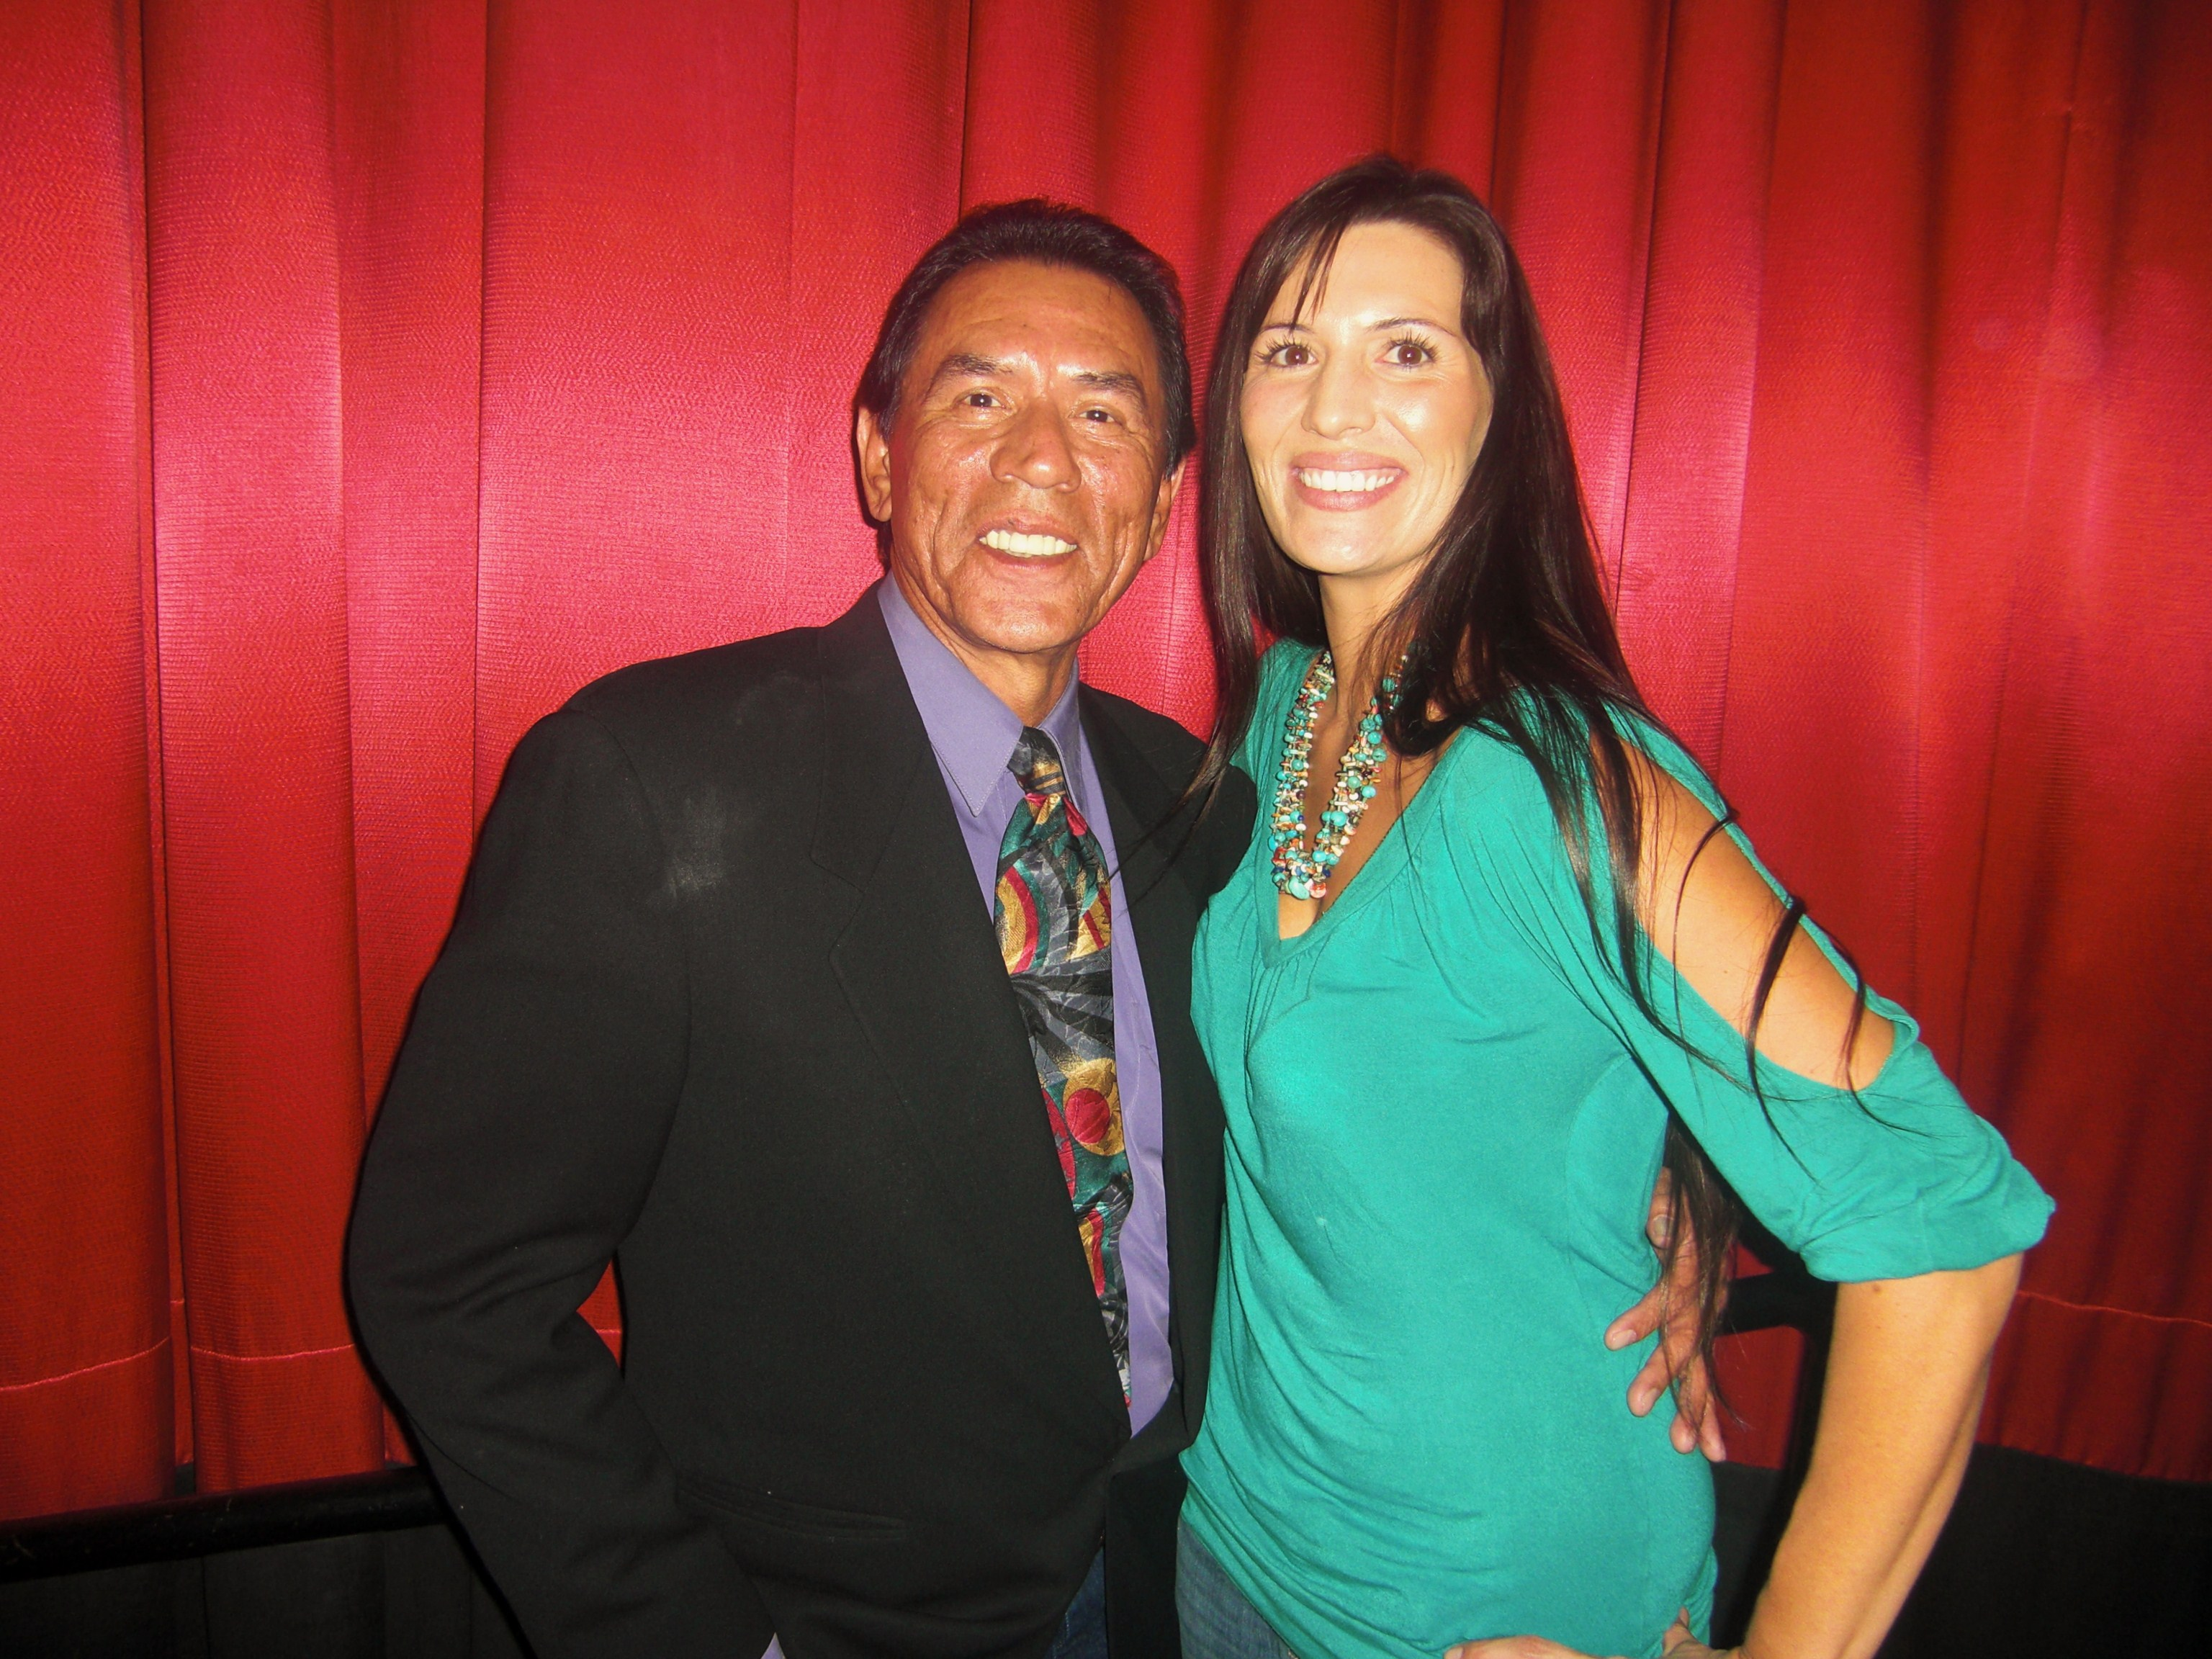 Micqaela and actor Wes Studi